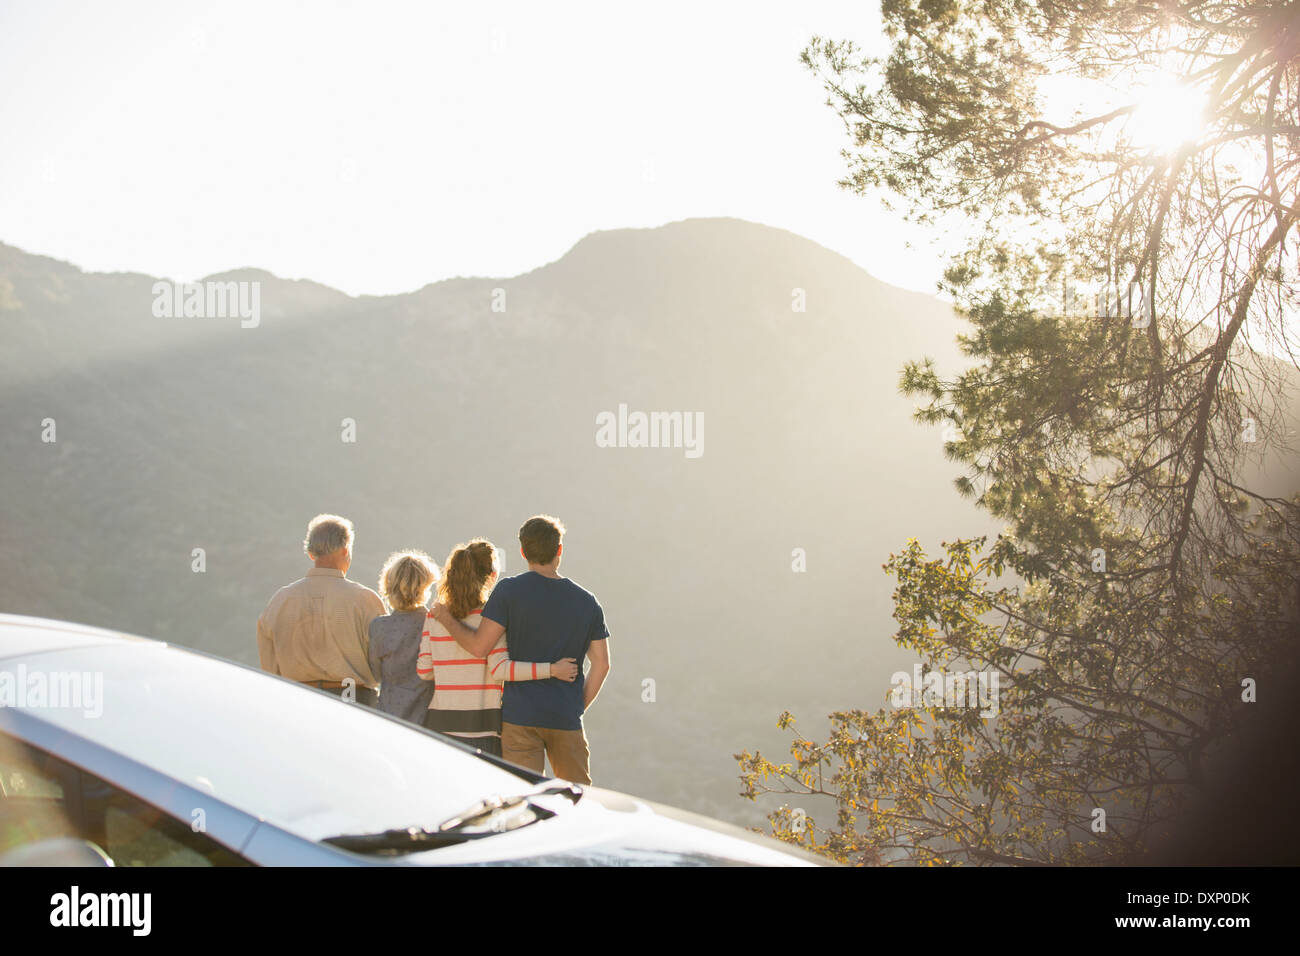 Family looking at mountain view outside car - Stock Image